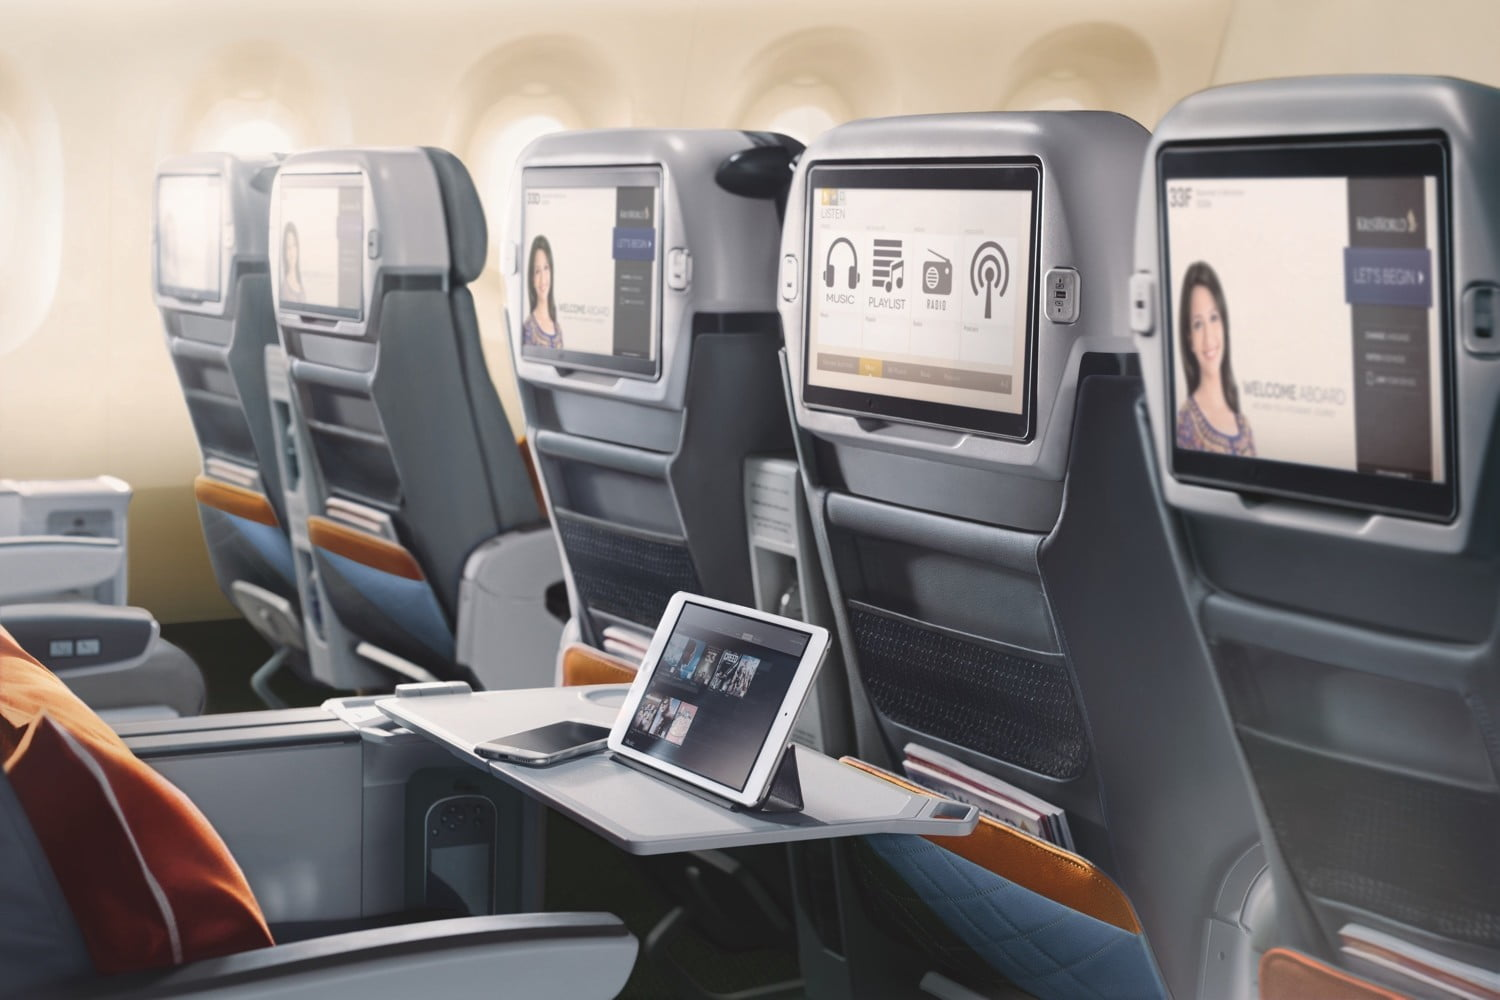 9 premium economy classes: Stretch your legs and your dollar